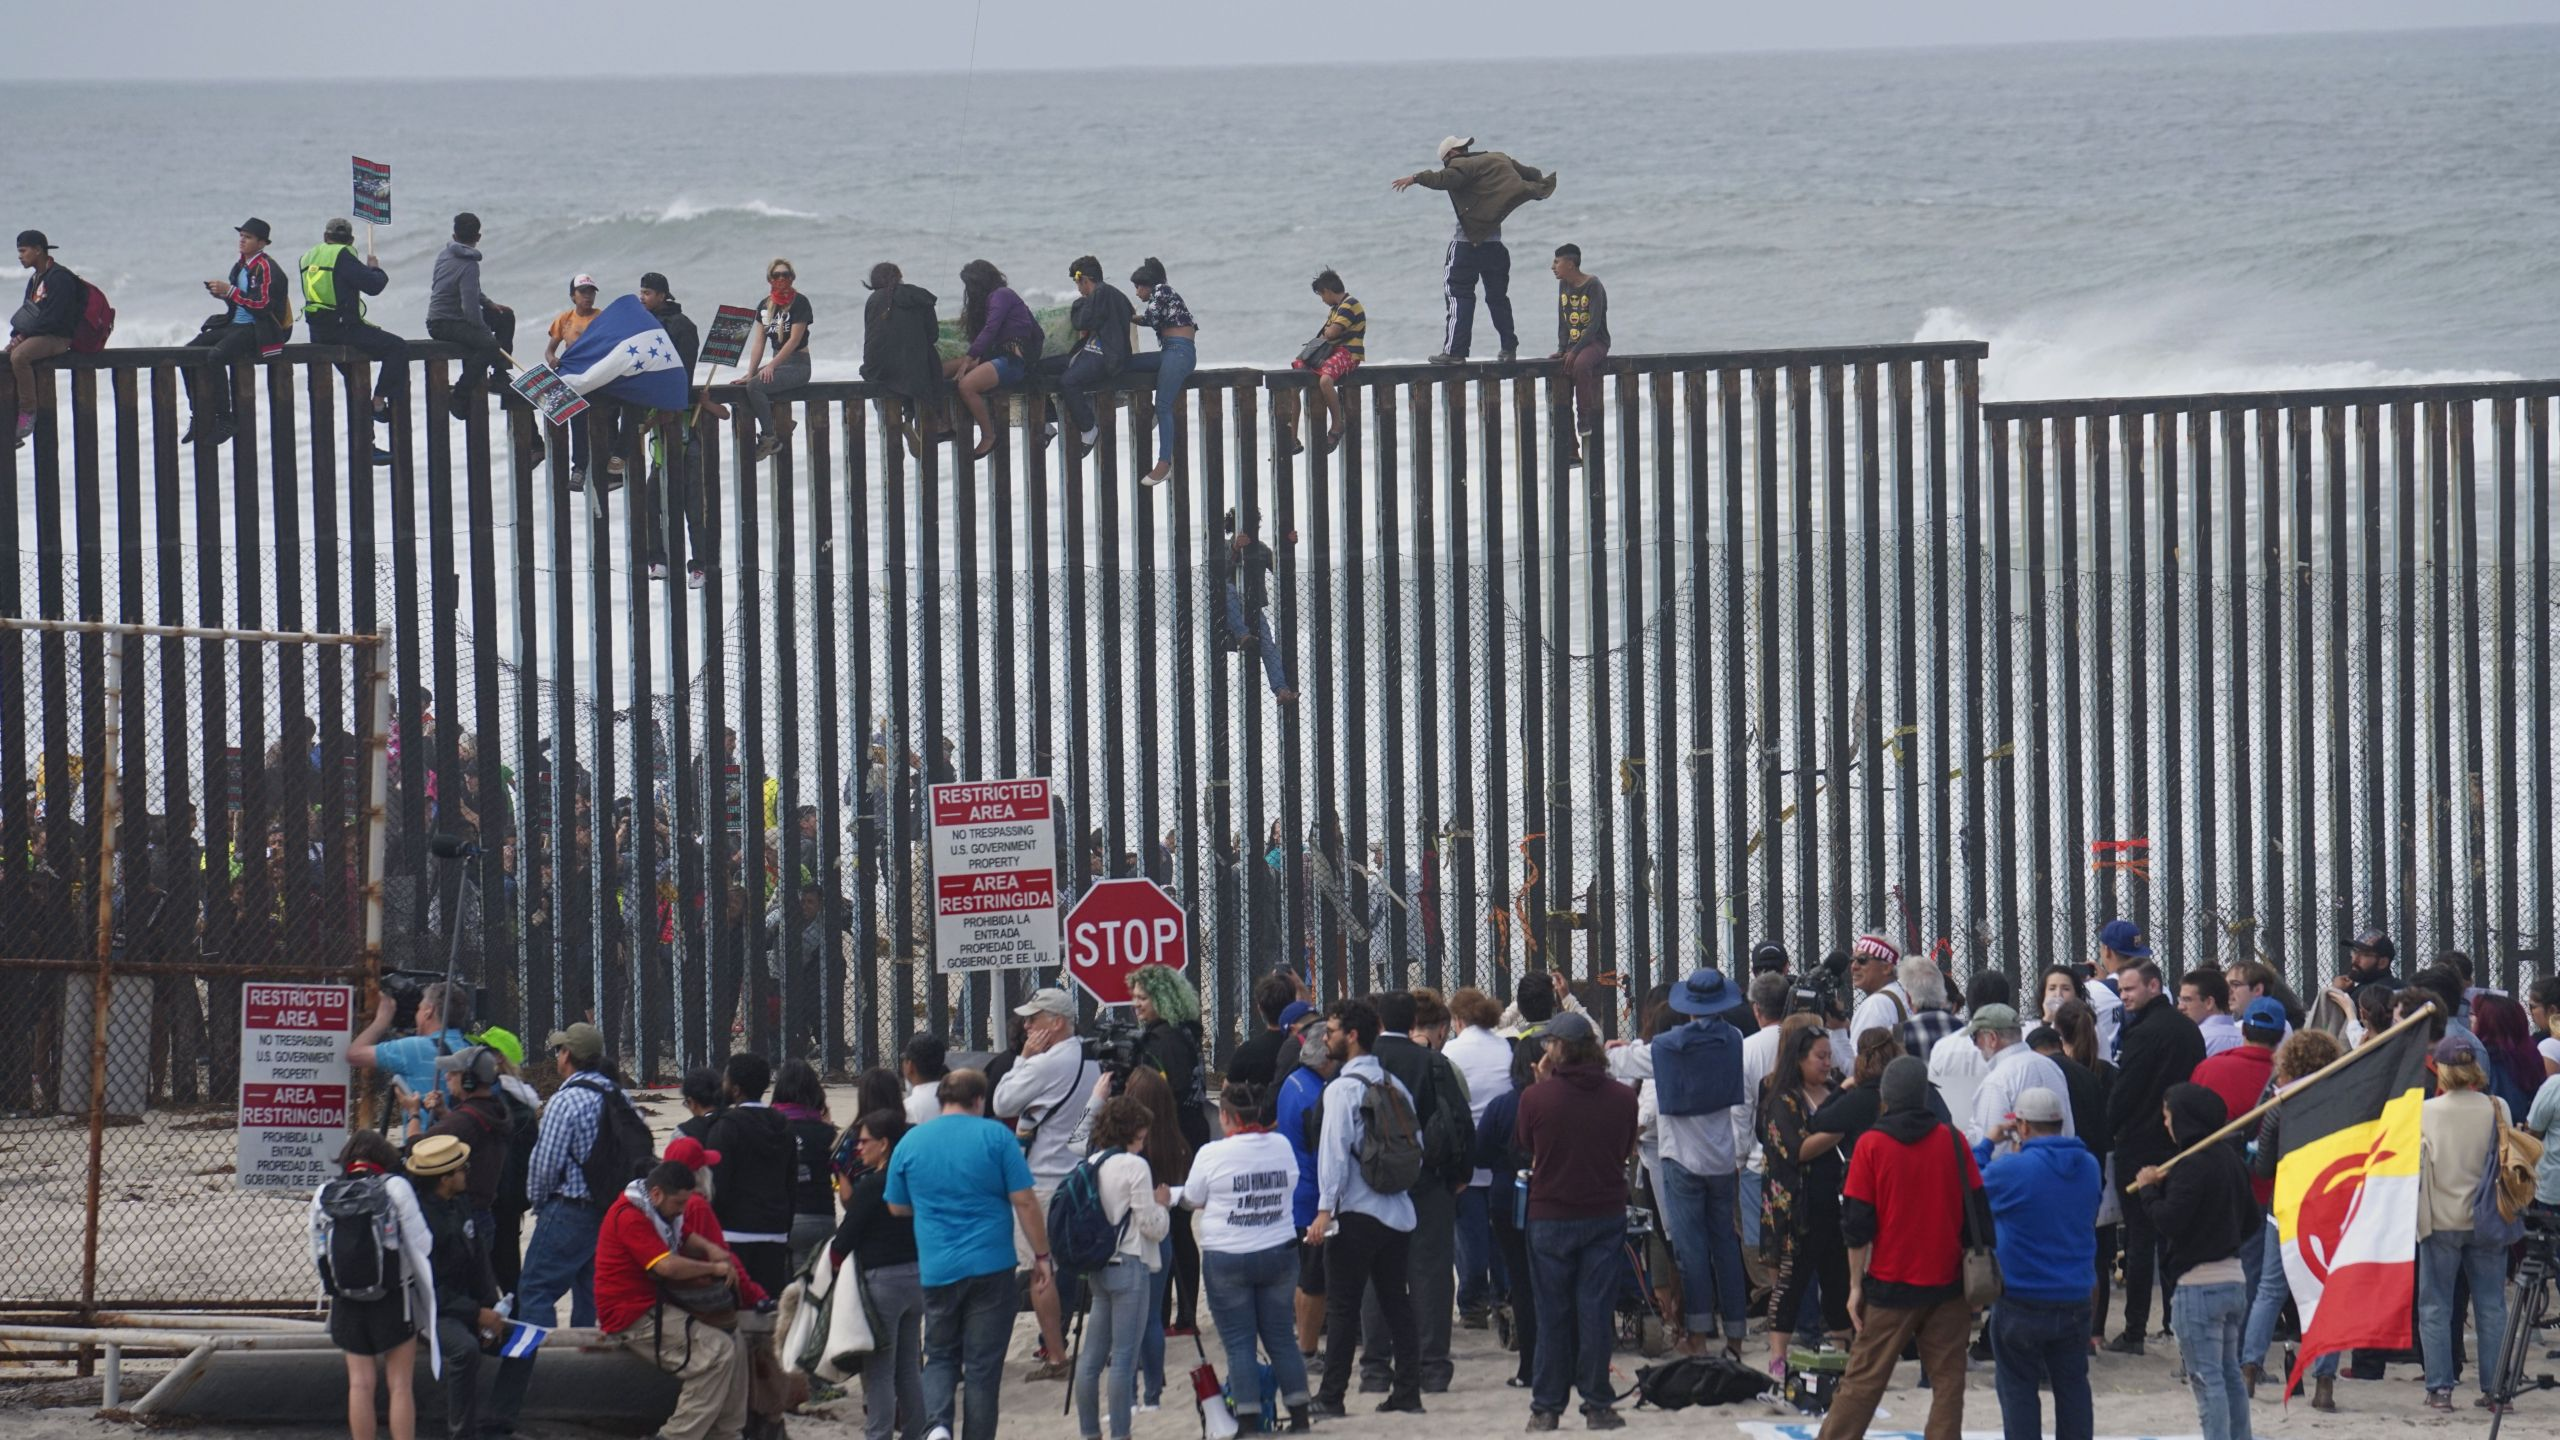 Pro-migrant caravan demonstrators climb the US-Mexico border fence during a rally on April 29, 2018 in San Ysidro. (Credit: SANDY HUFFAKER/AFP/Getty Images)